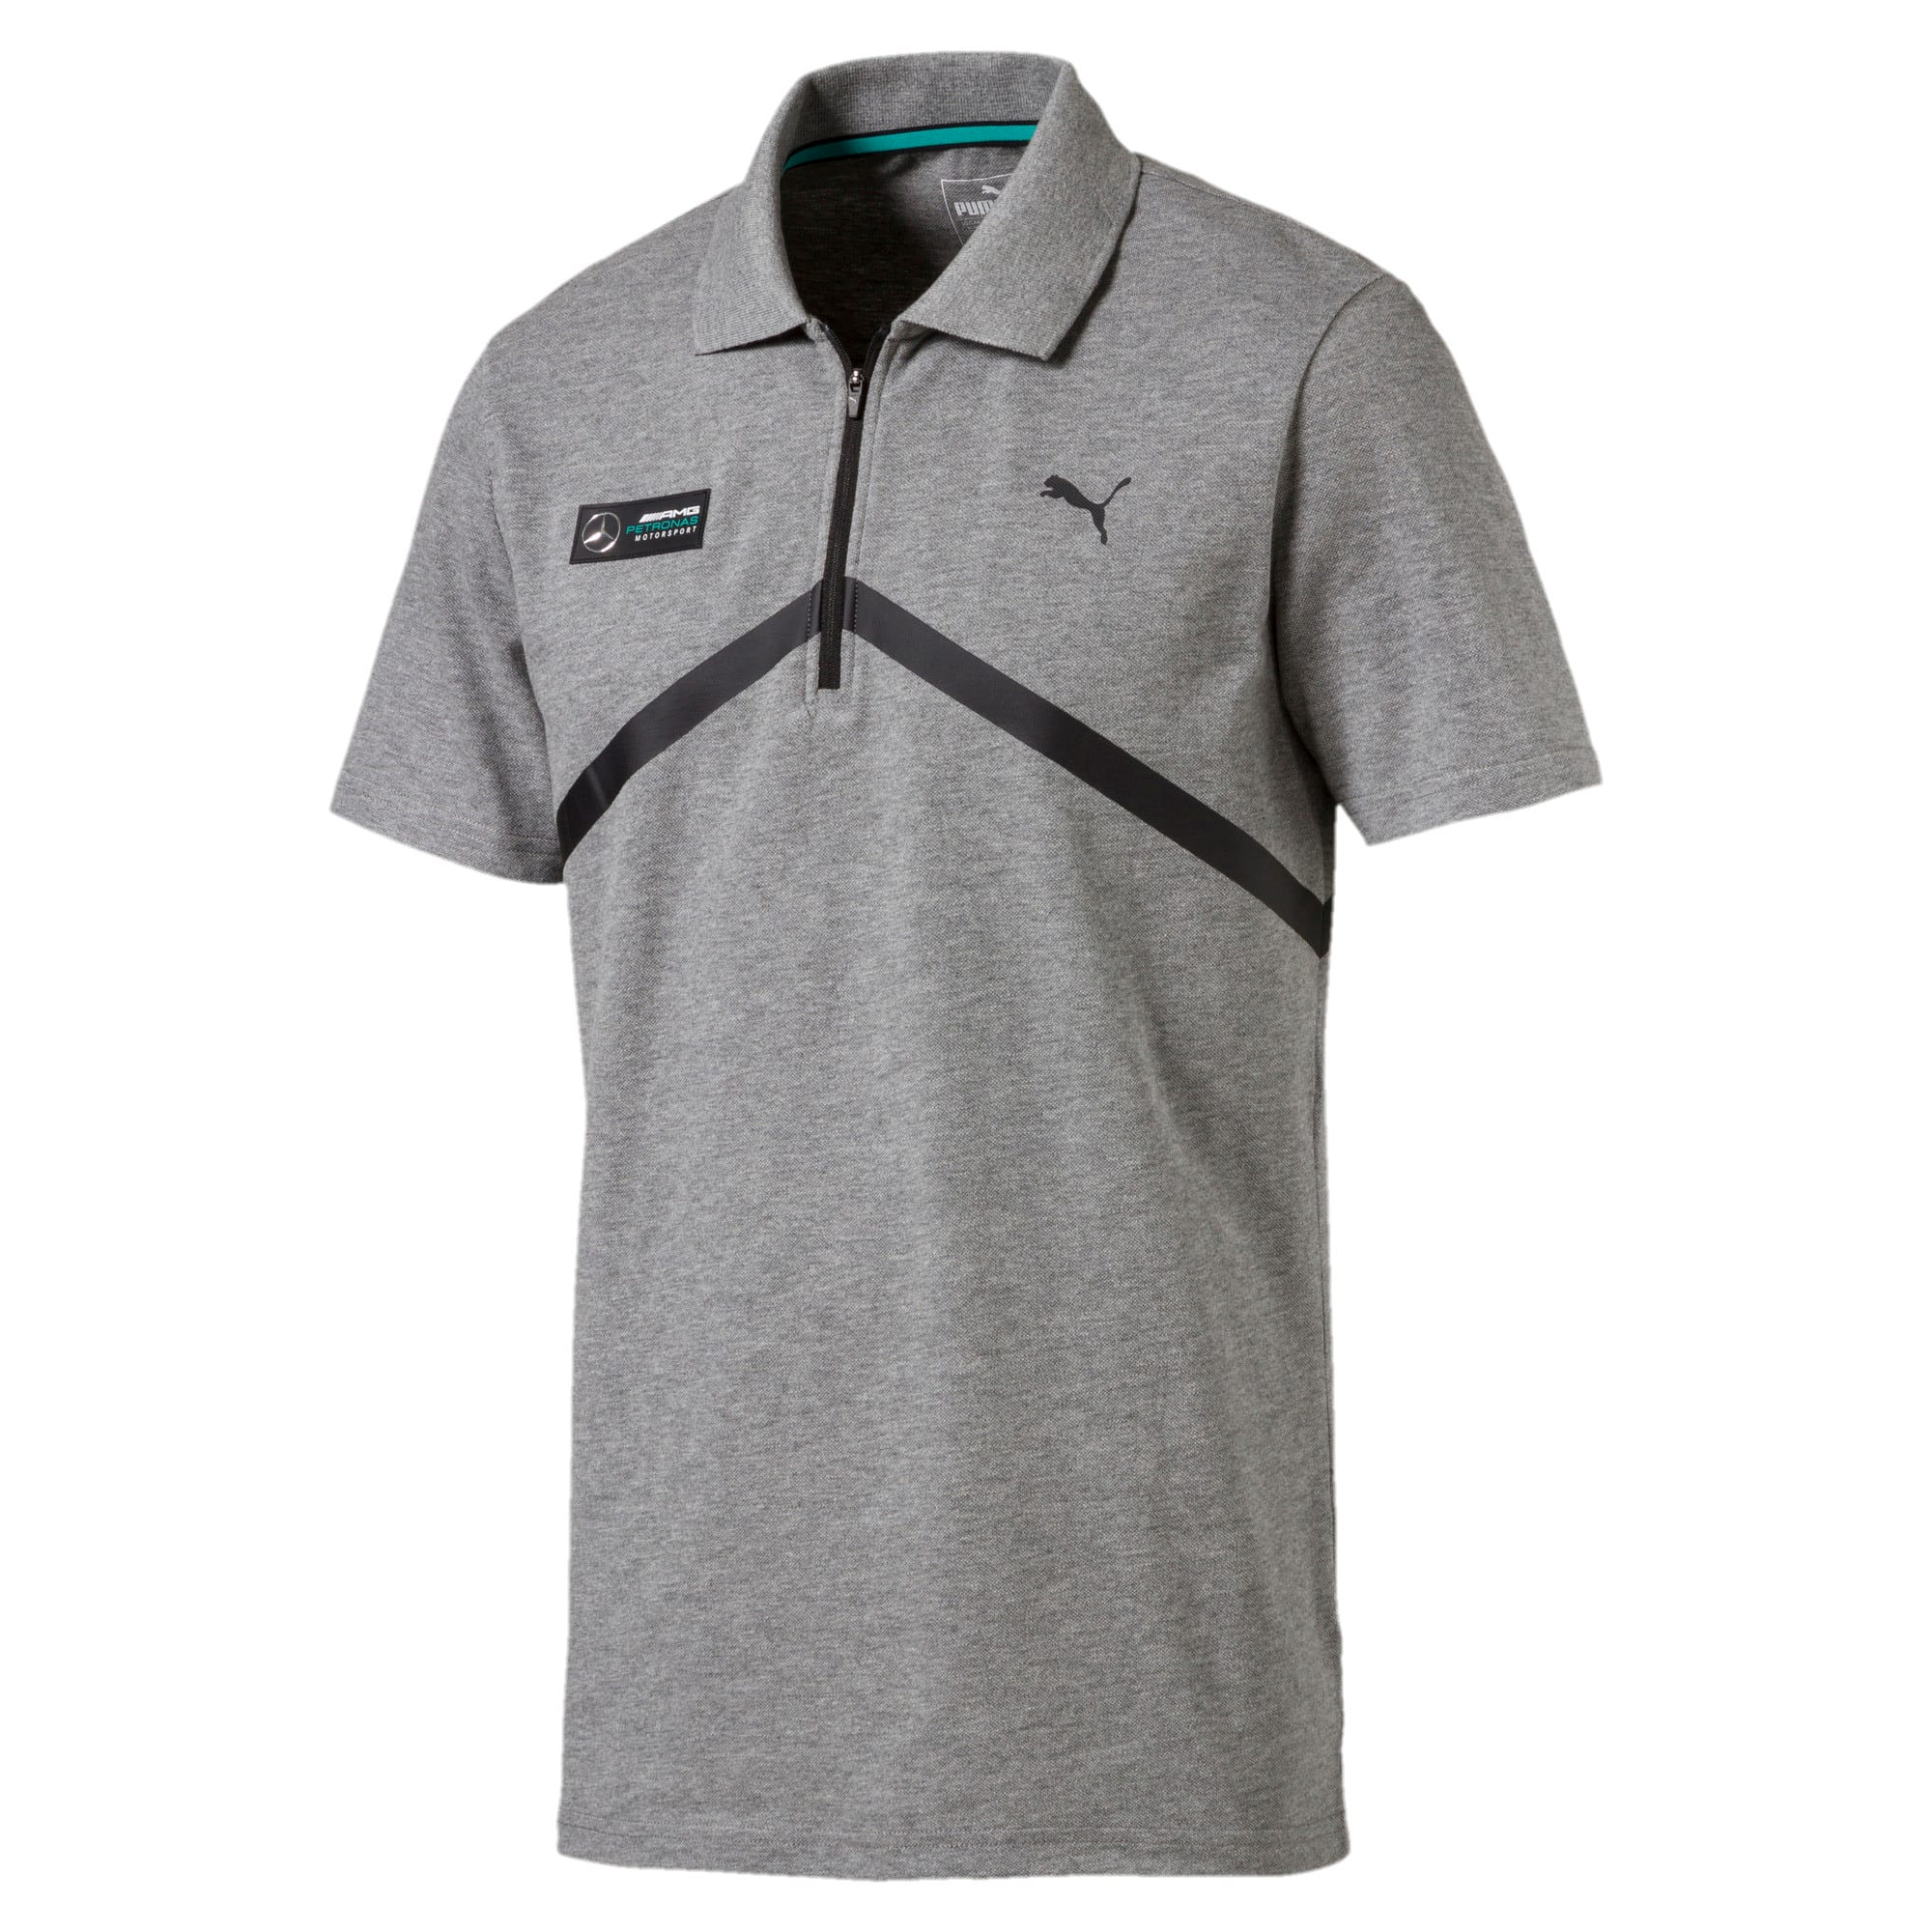 Thumbnail 1 of MERCEDES AMG PETRONAS Men's Polo, Medium Gray Heather, medium